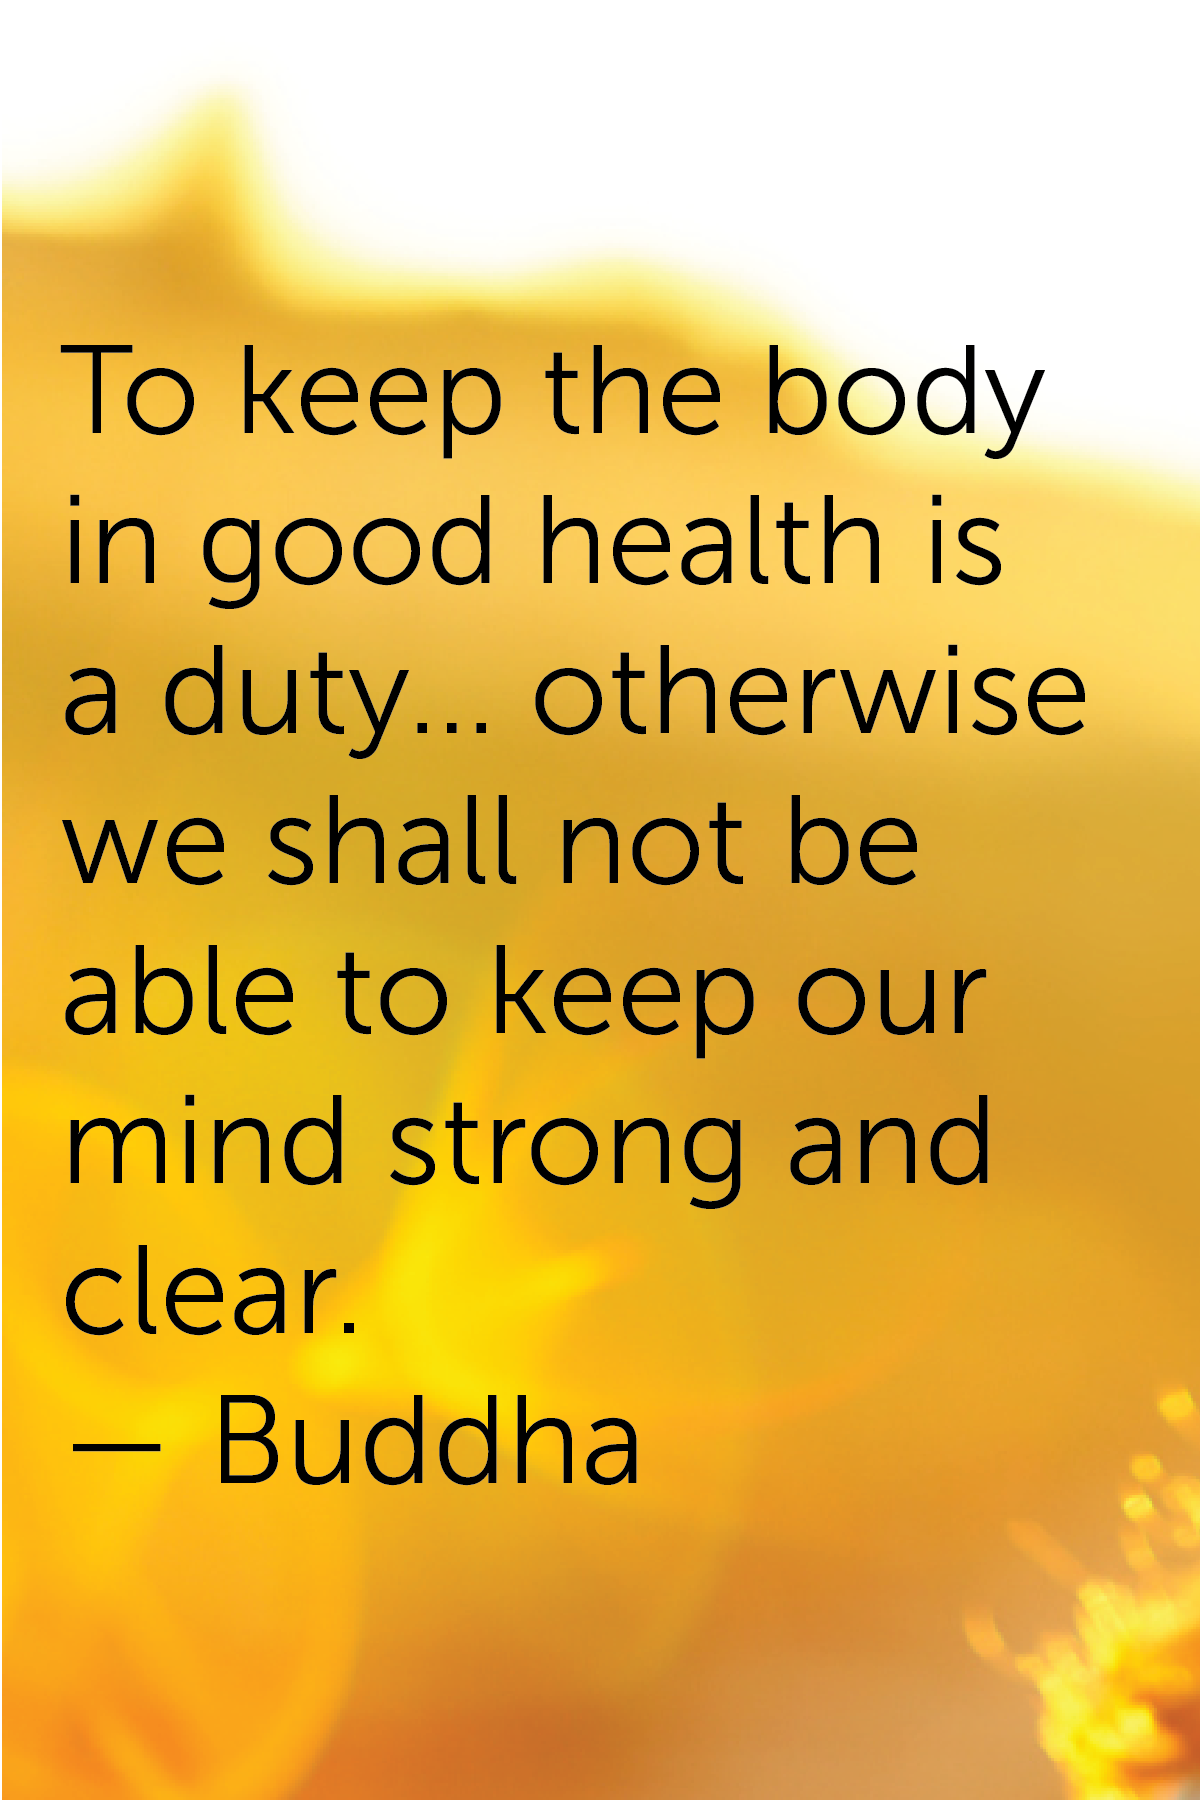 Good Health Quotes 30 Inspiring Health Quotes To Kick You Into Gear  Health Quotes